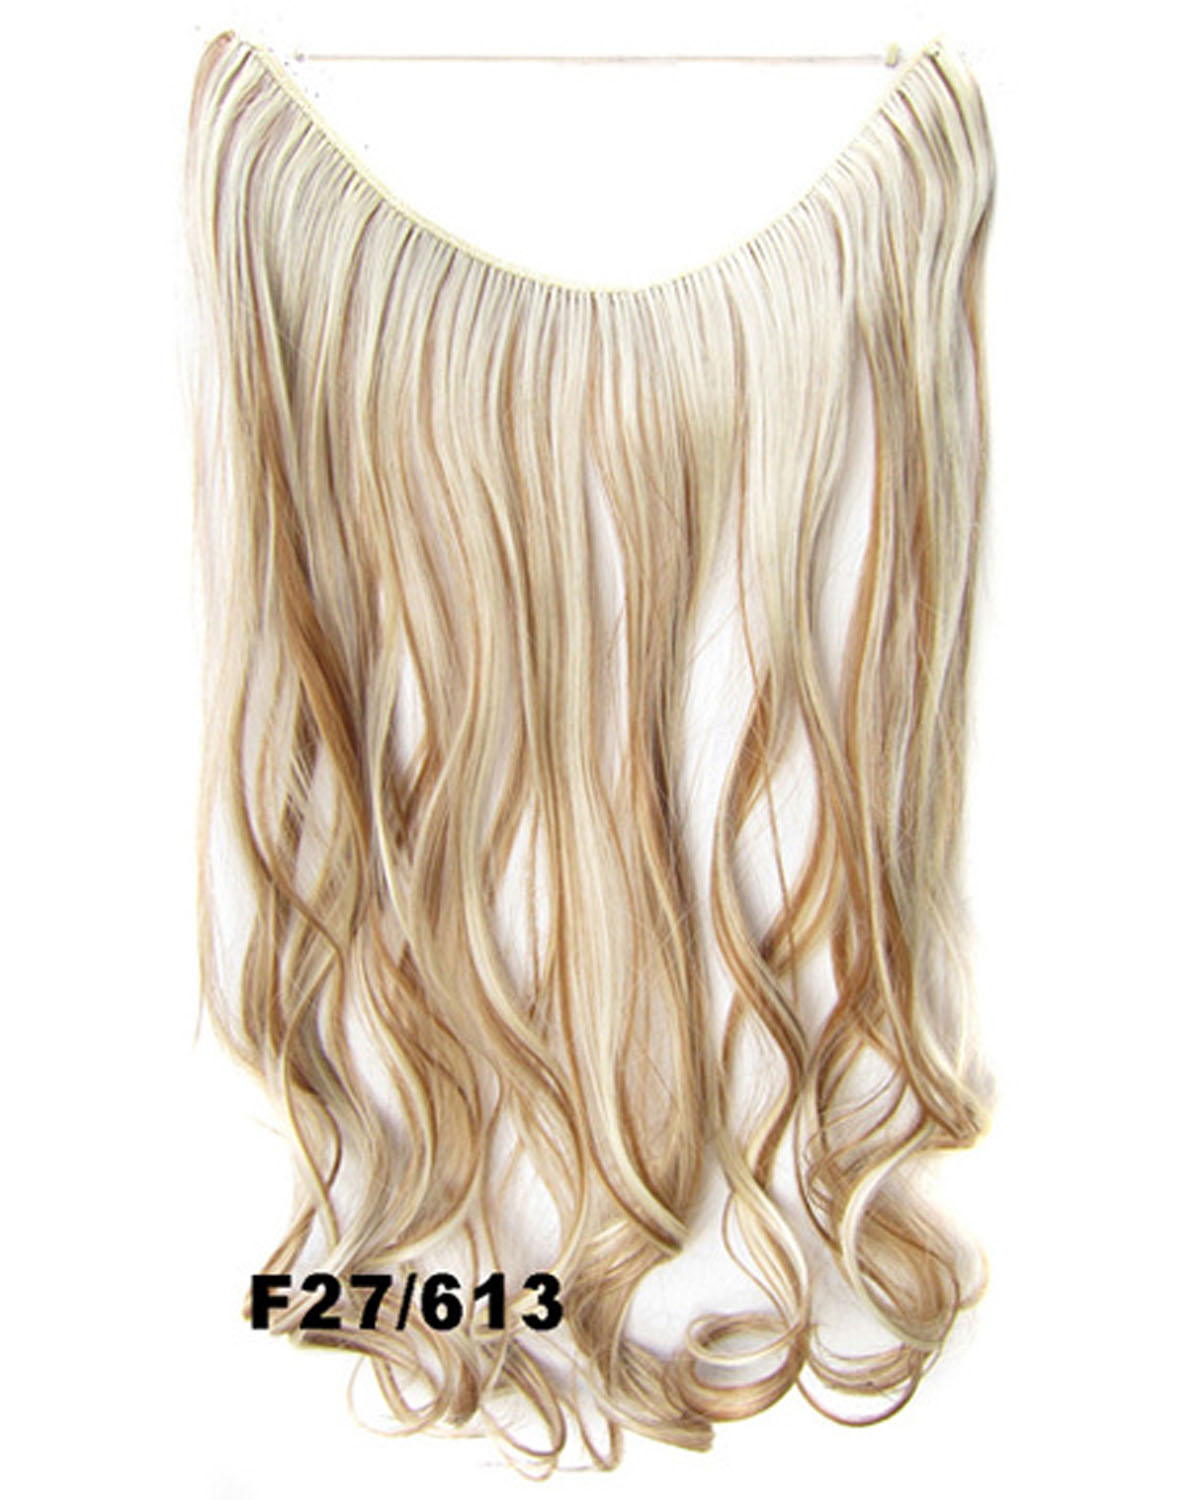 22 Inch High Quality Curly and Long One Piece Miracle Wire Flip in Synthetic Hair Extension F27/613